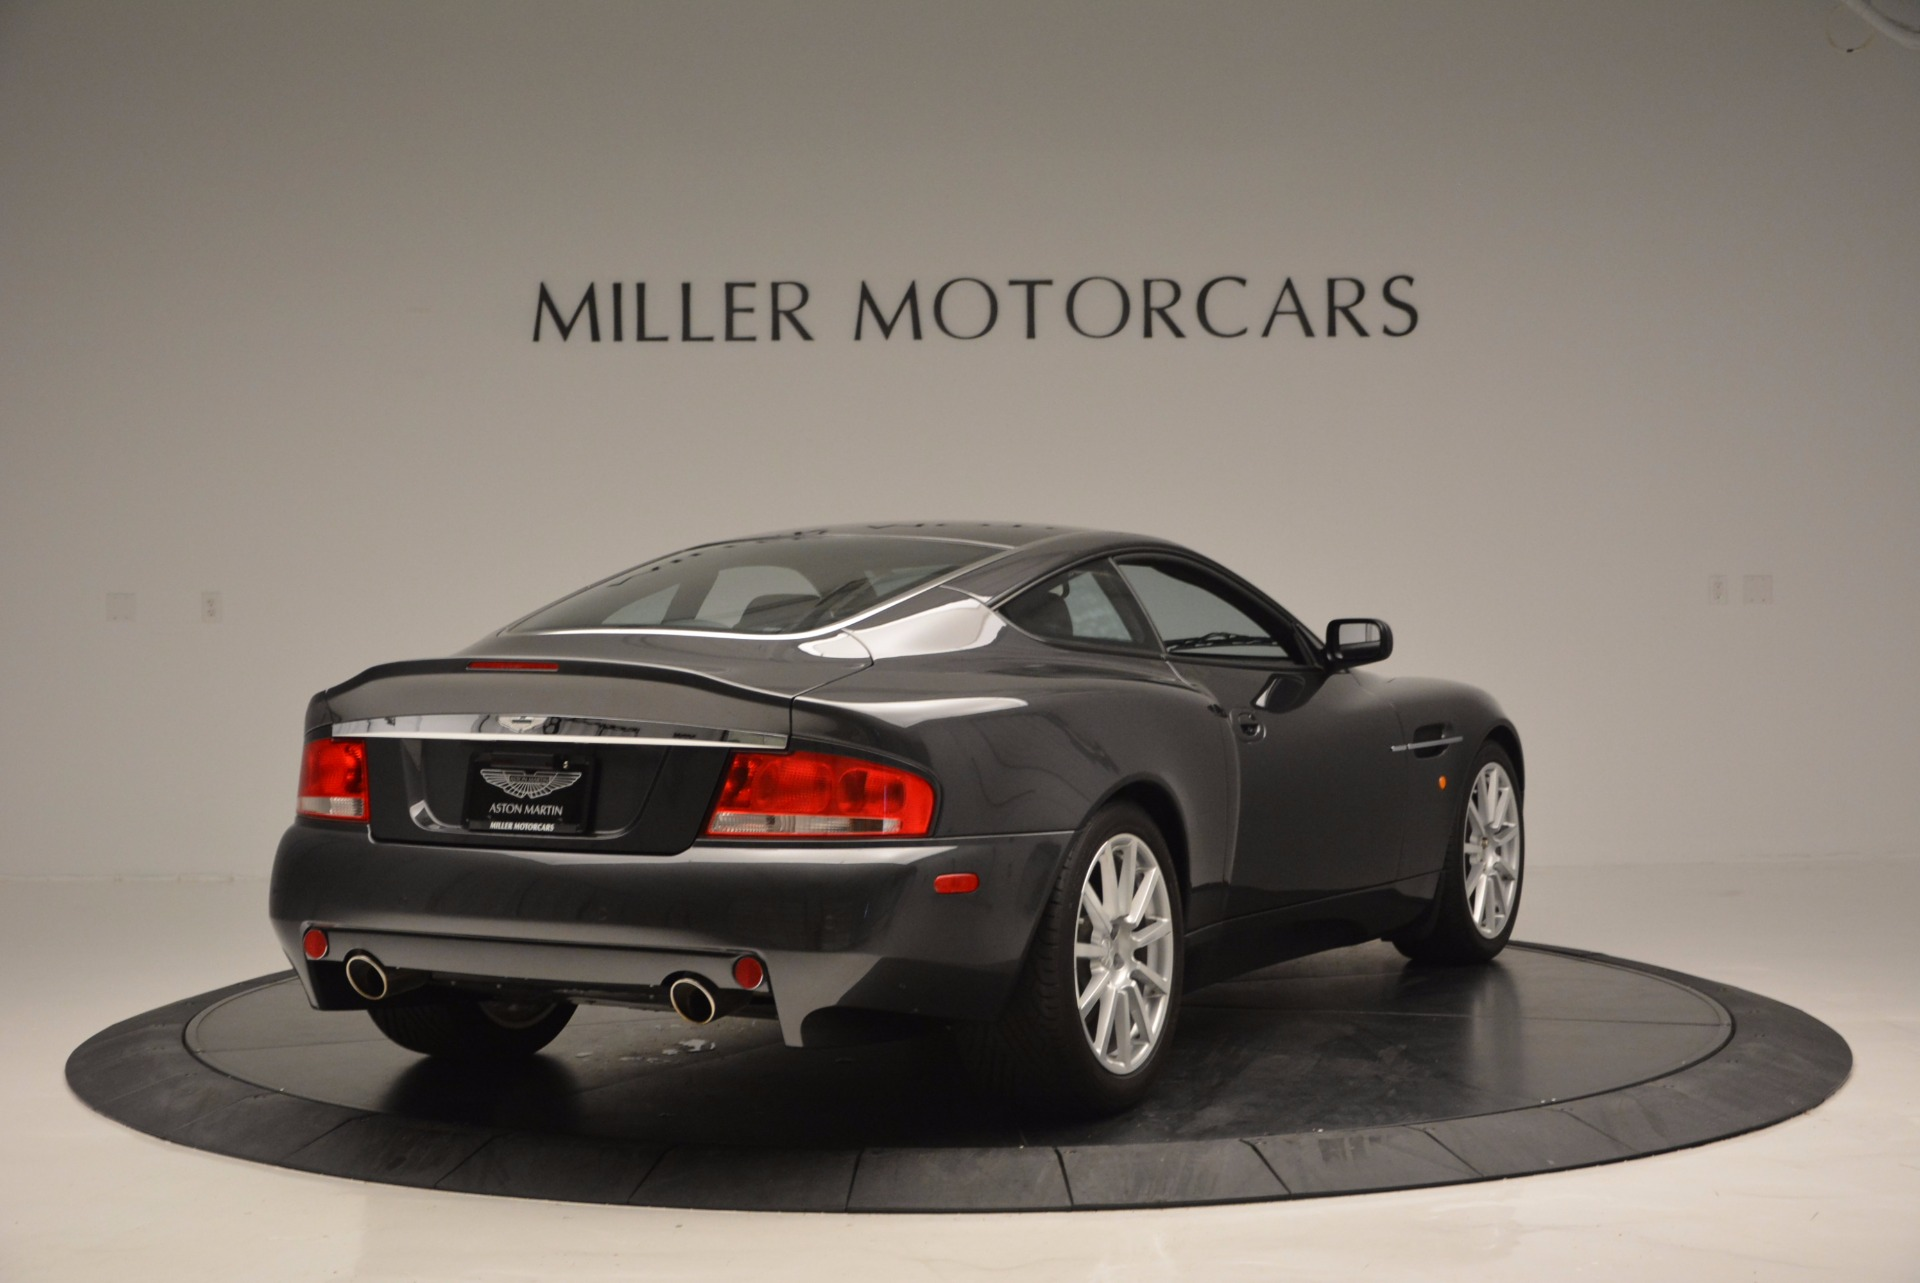 Used 2005 Aston Martin V12 Vanquish S For Sale In Greenwich, CT 645_p7